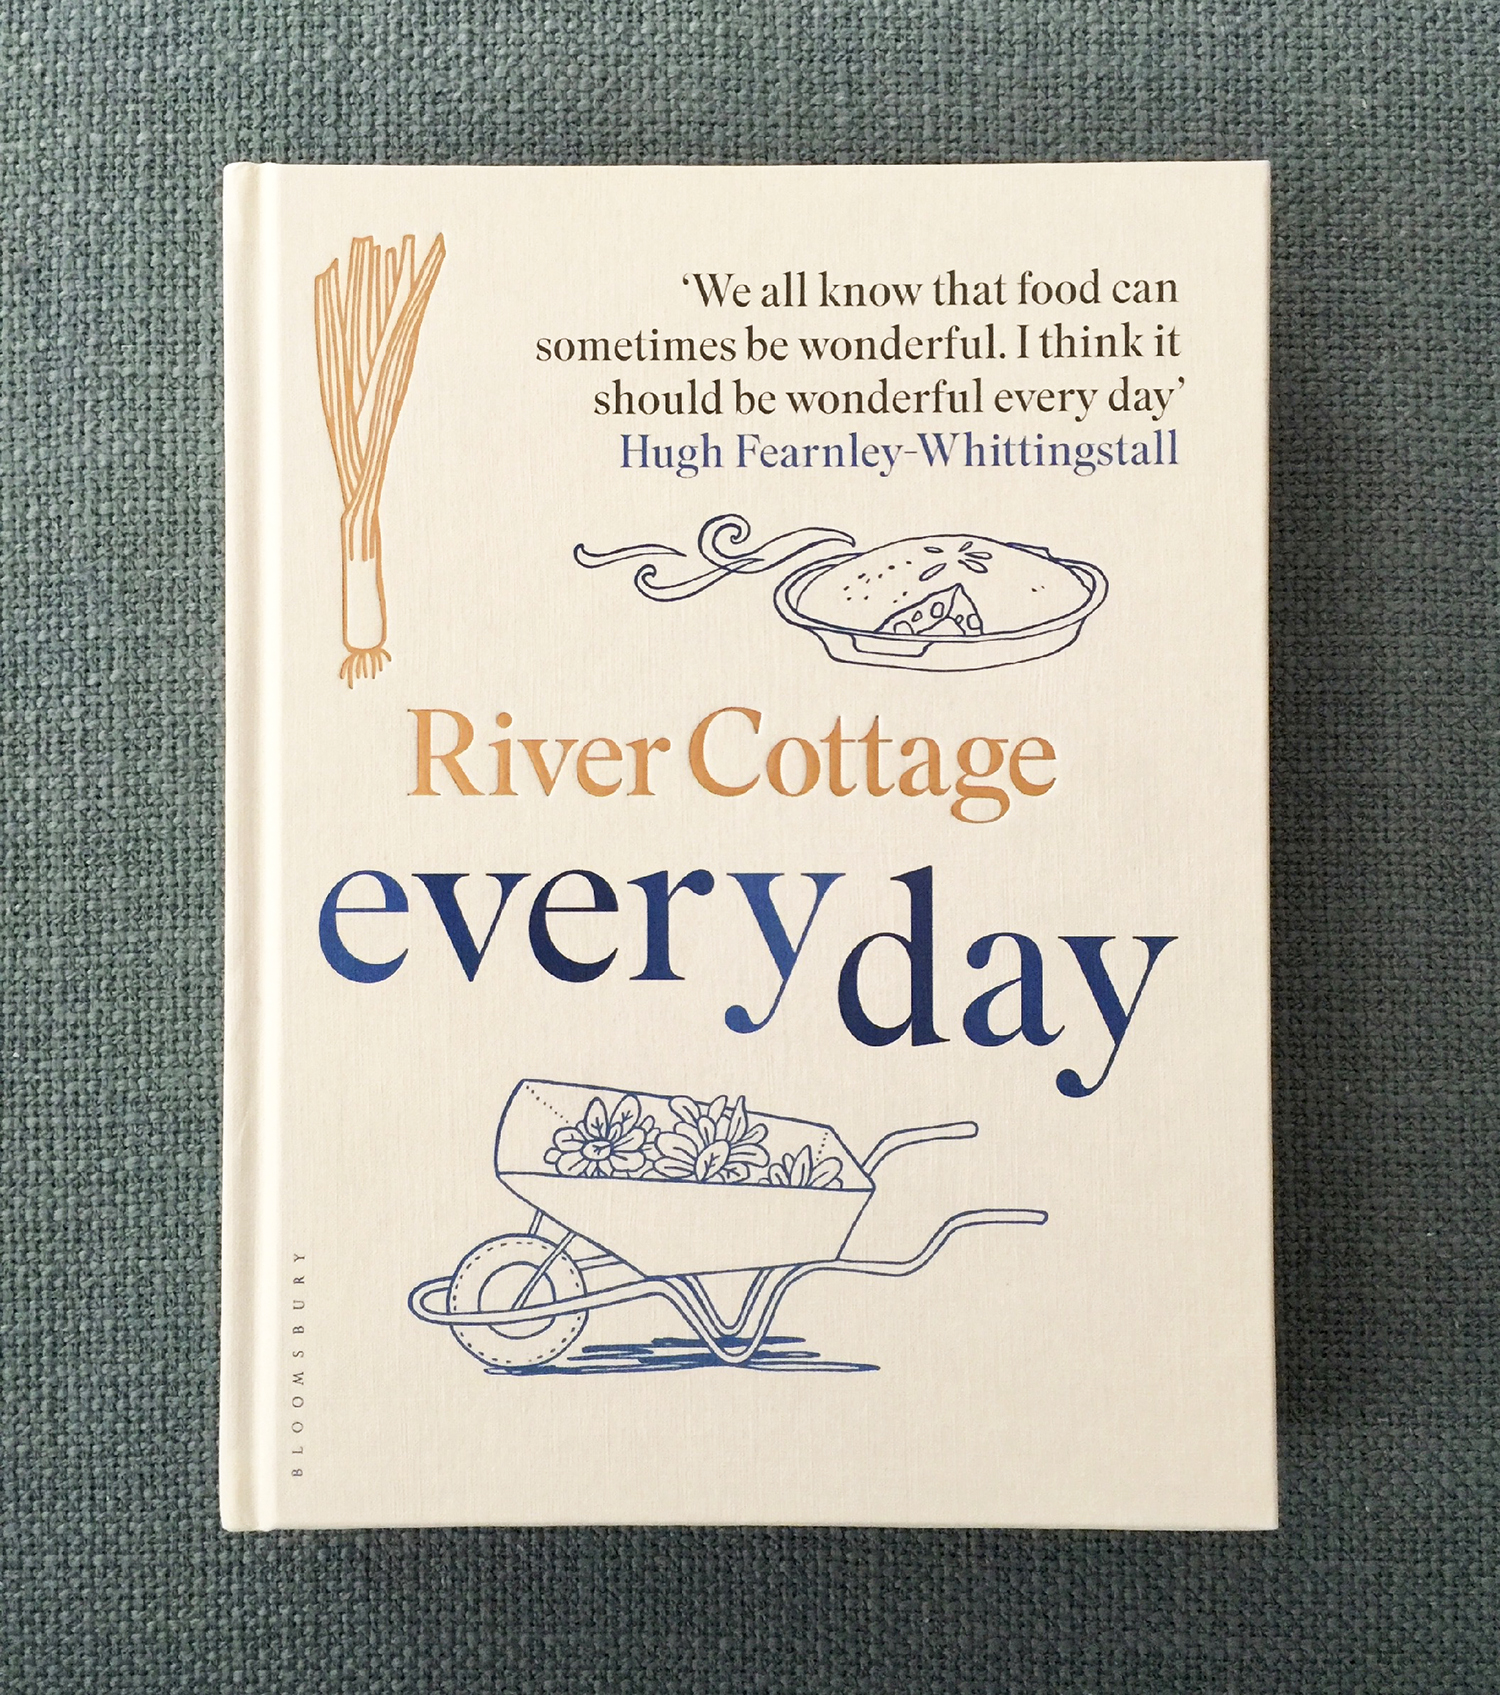 River Cottage everyday re-issue